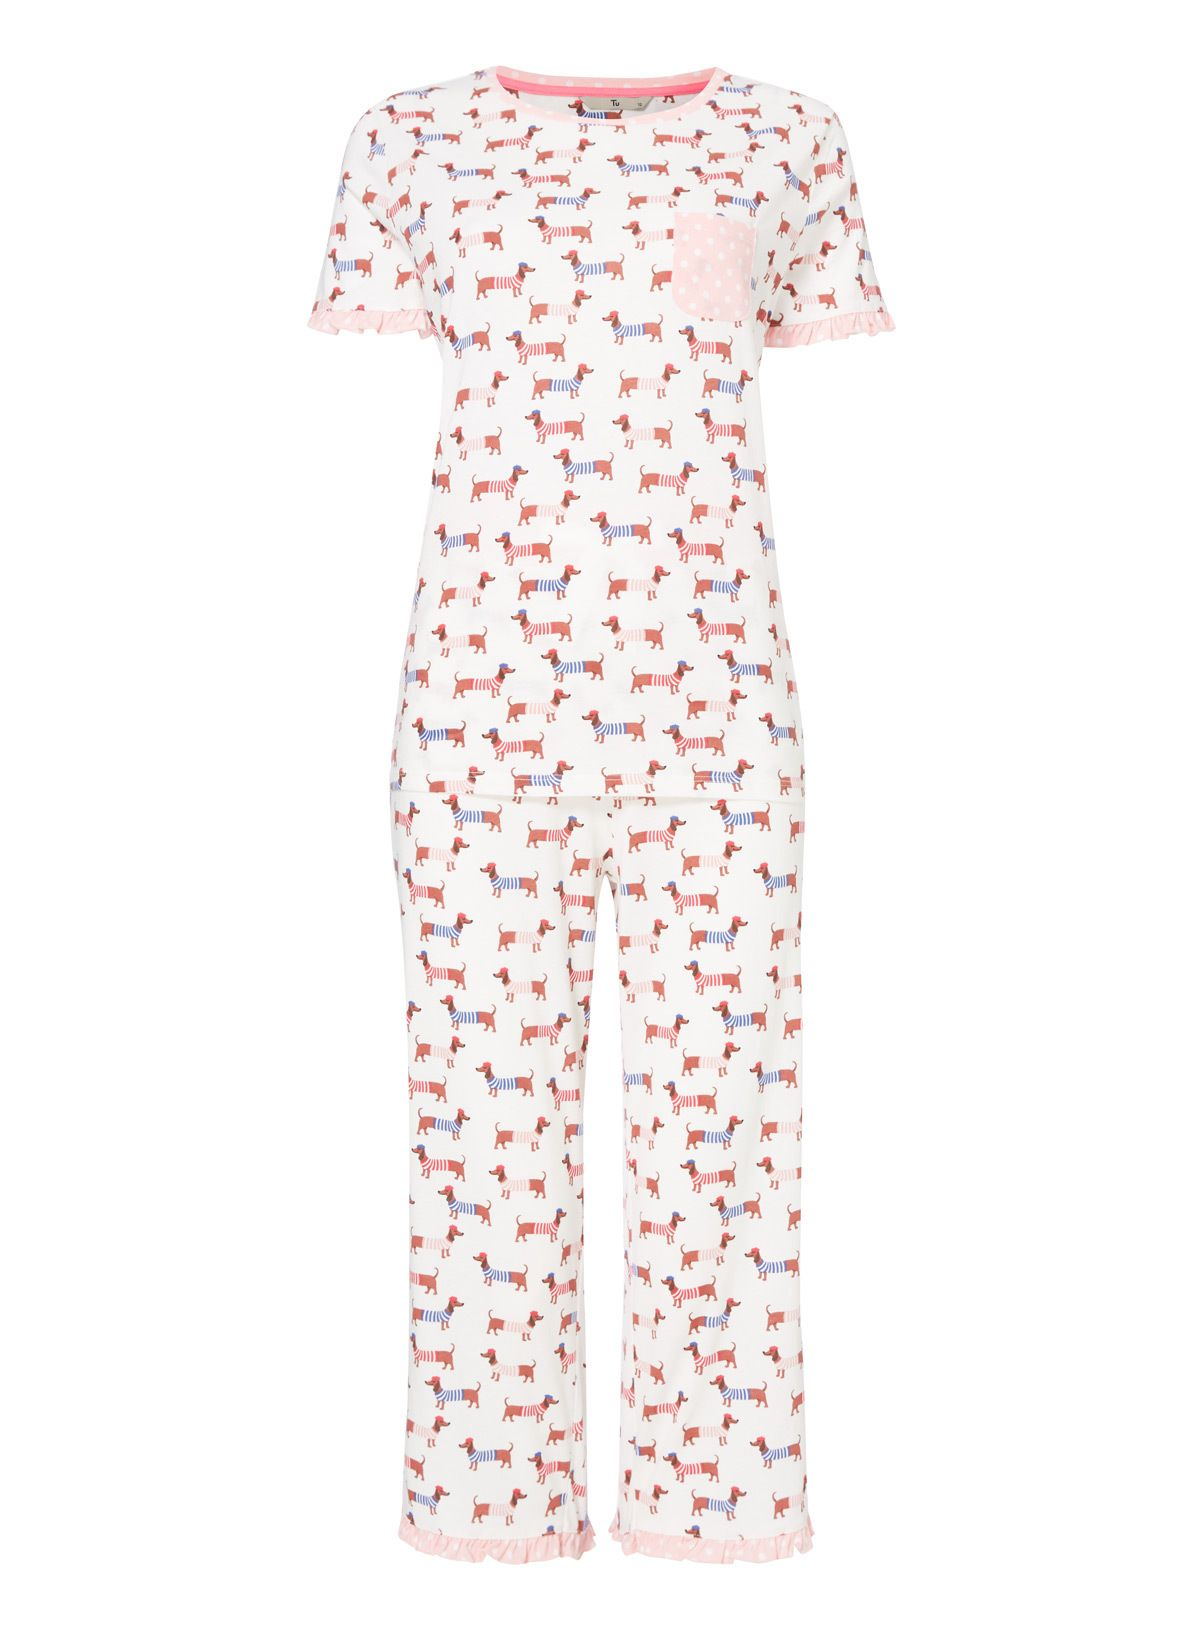 Cute and playful, this pure cotton pyjama set is a fun addition to ...